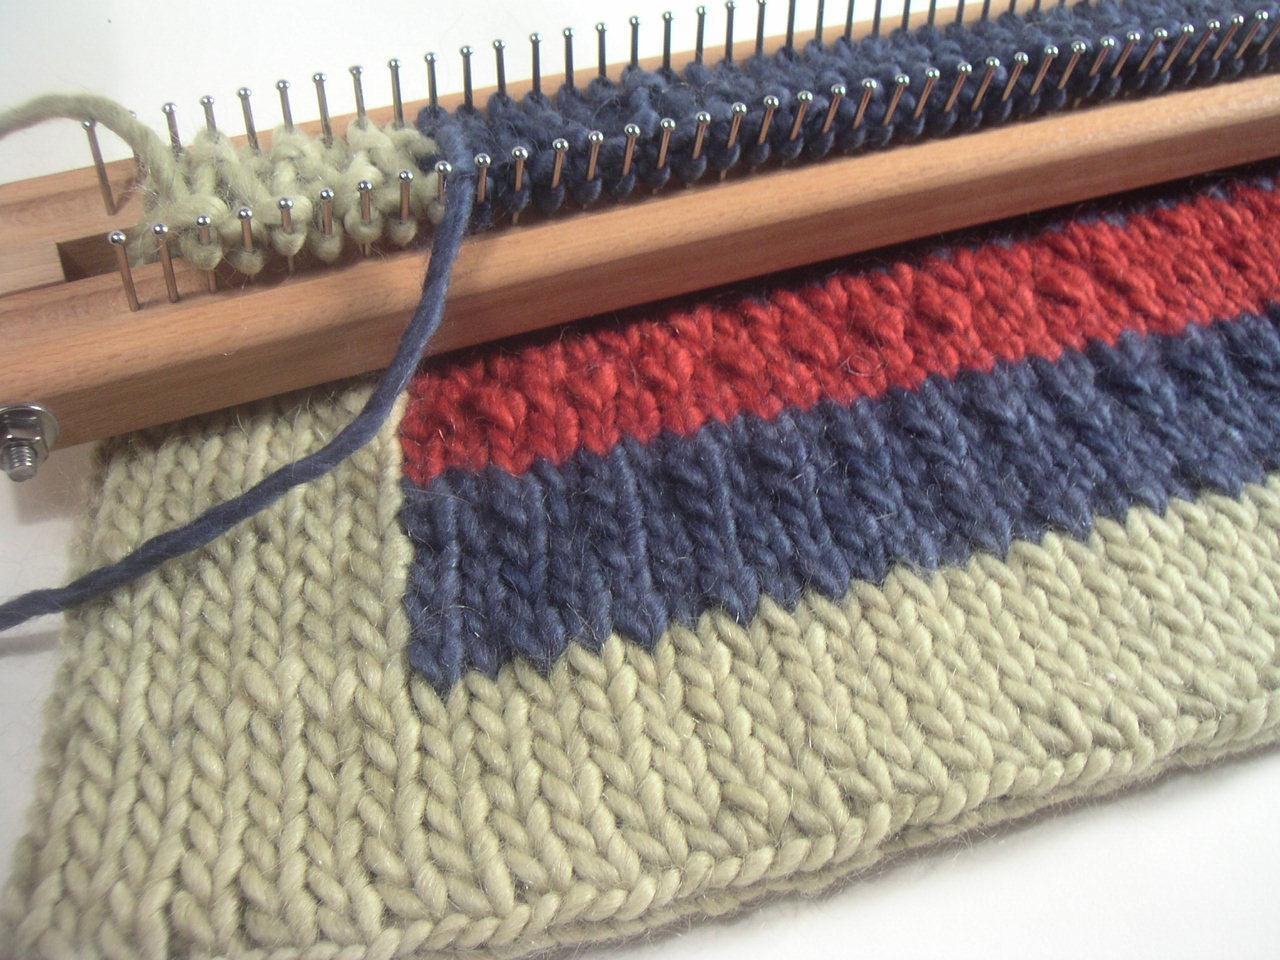 How To Knit A Rug November A 2006 A Knitting Board Blog